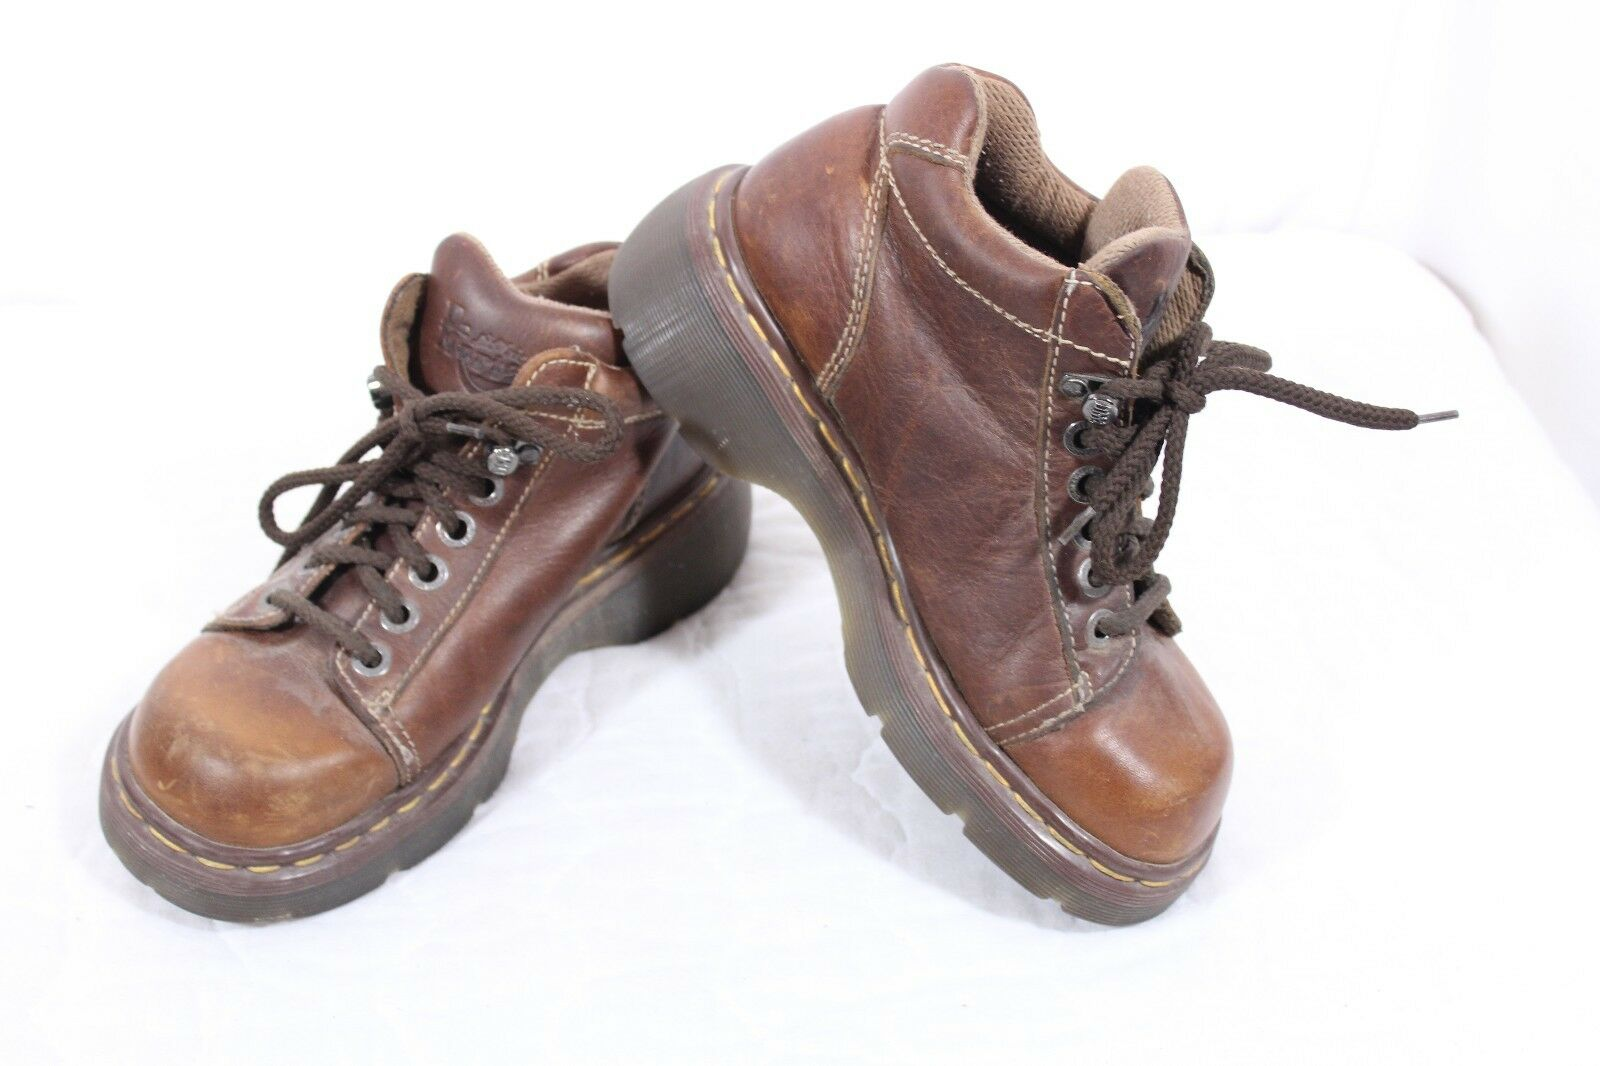 Dr. Martens SZ 7 US Brown Distressed Smooth Trail Blazer Leather Boots